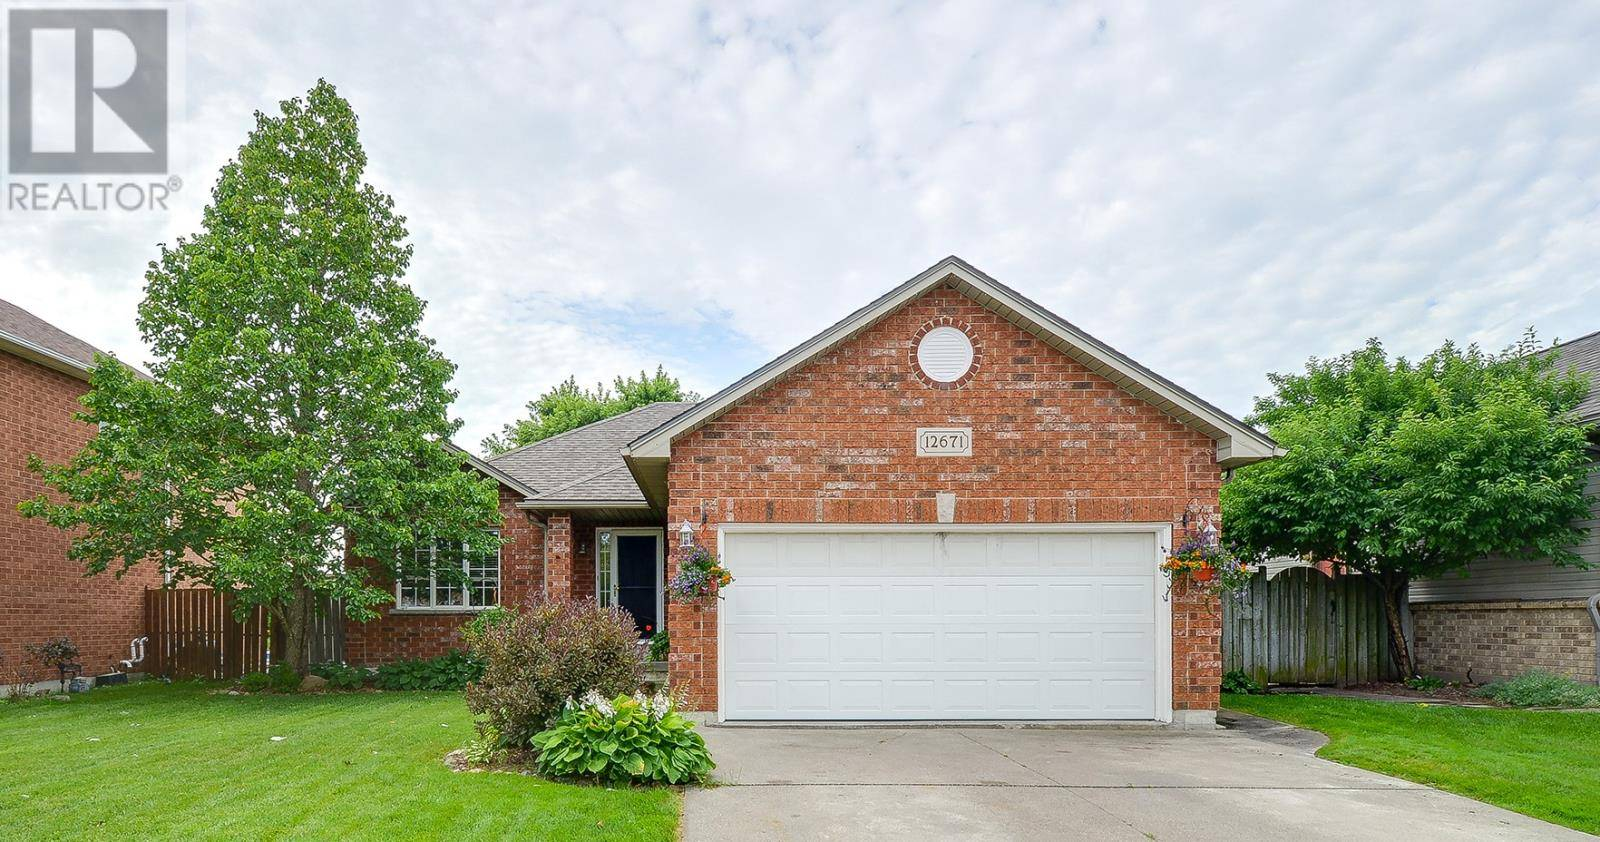 House for sale at 12671 Lanoue St Tecumseh Ontario - MLS: 19022290